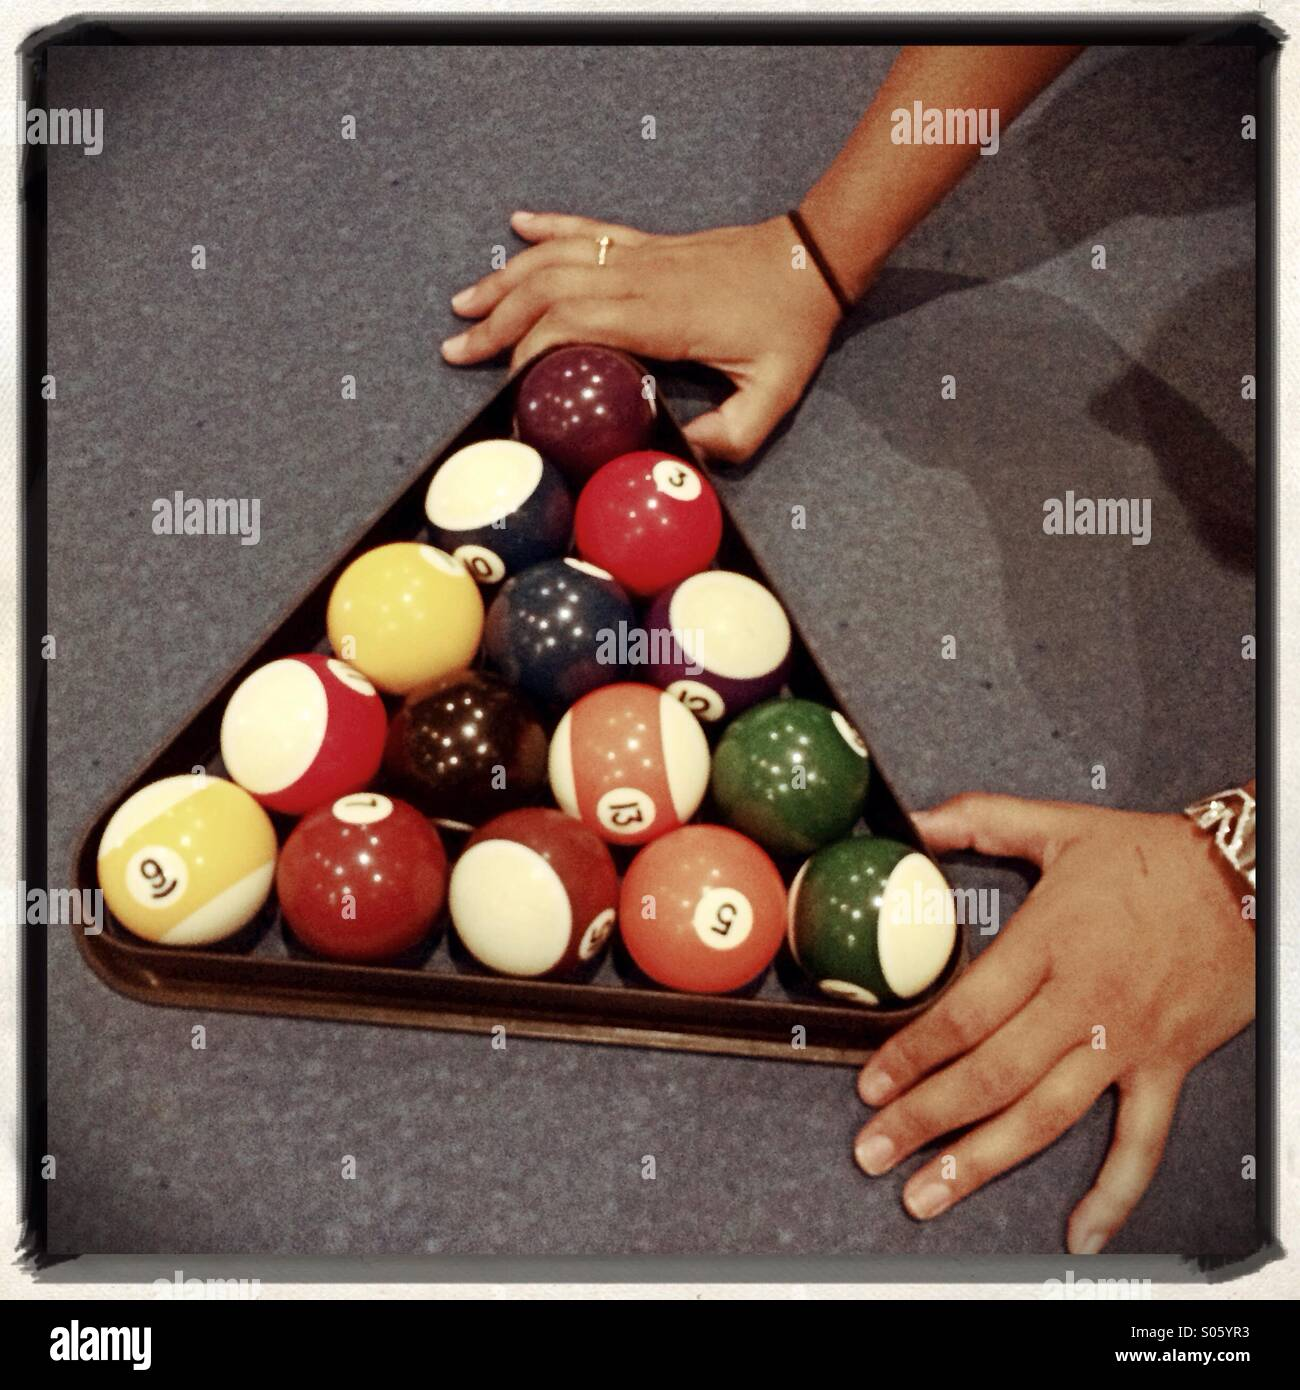 Woman arranging pool balls at the start of a game - Stock Image